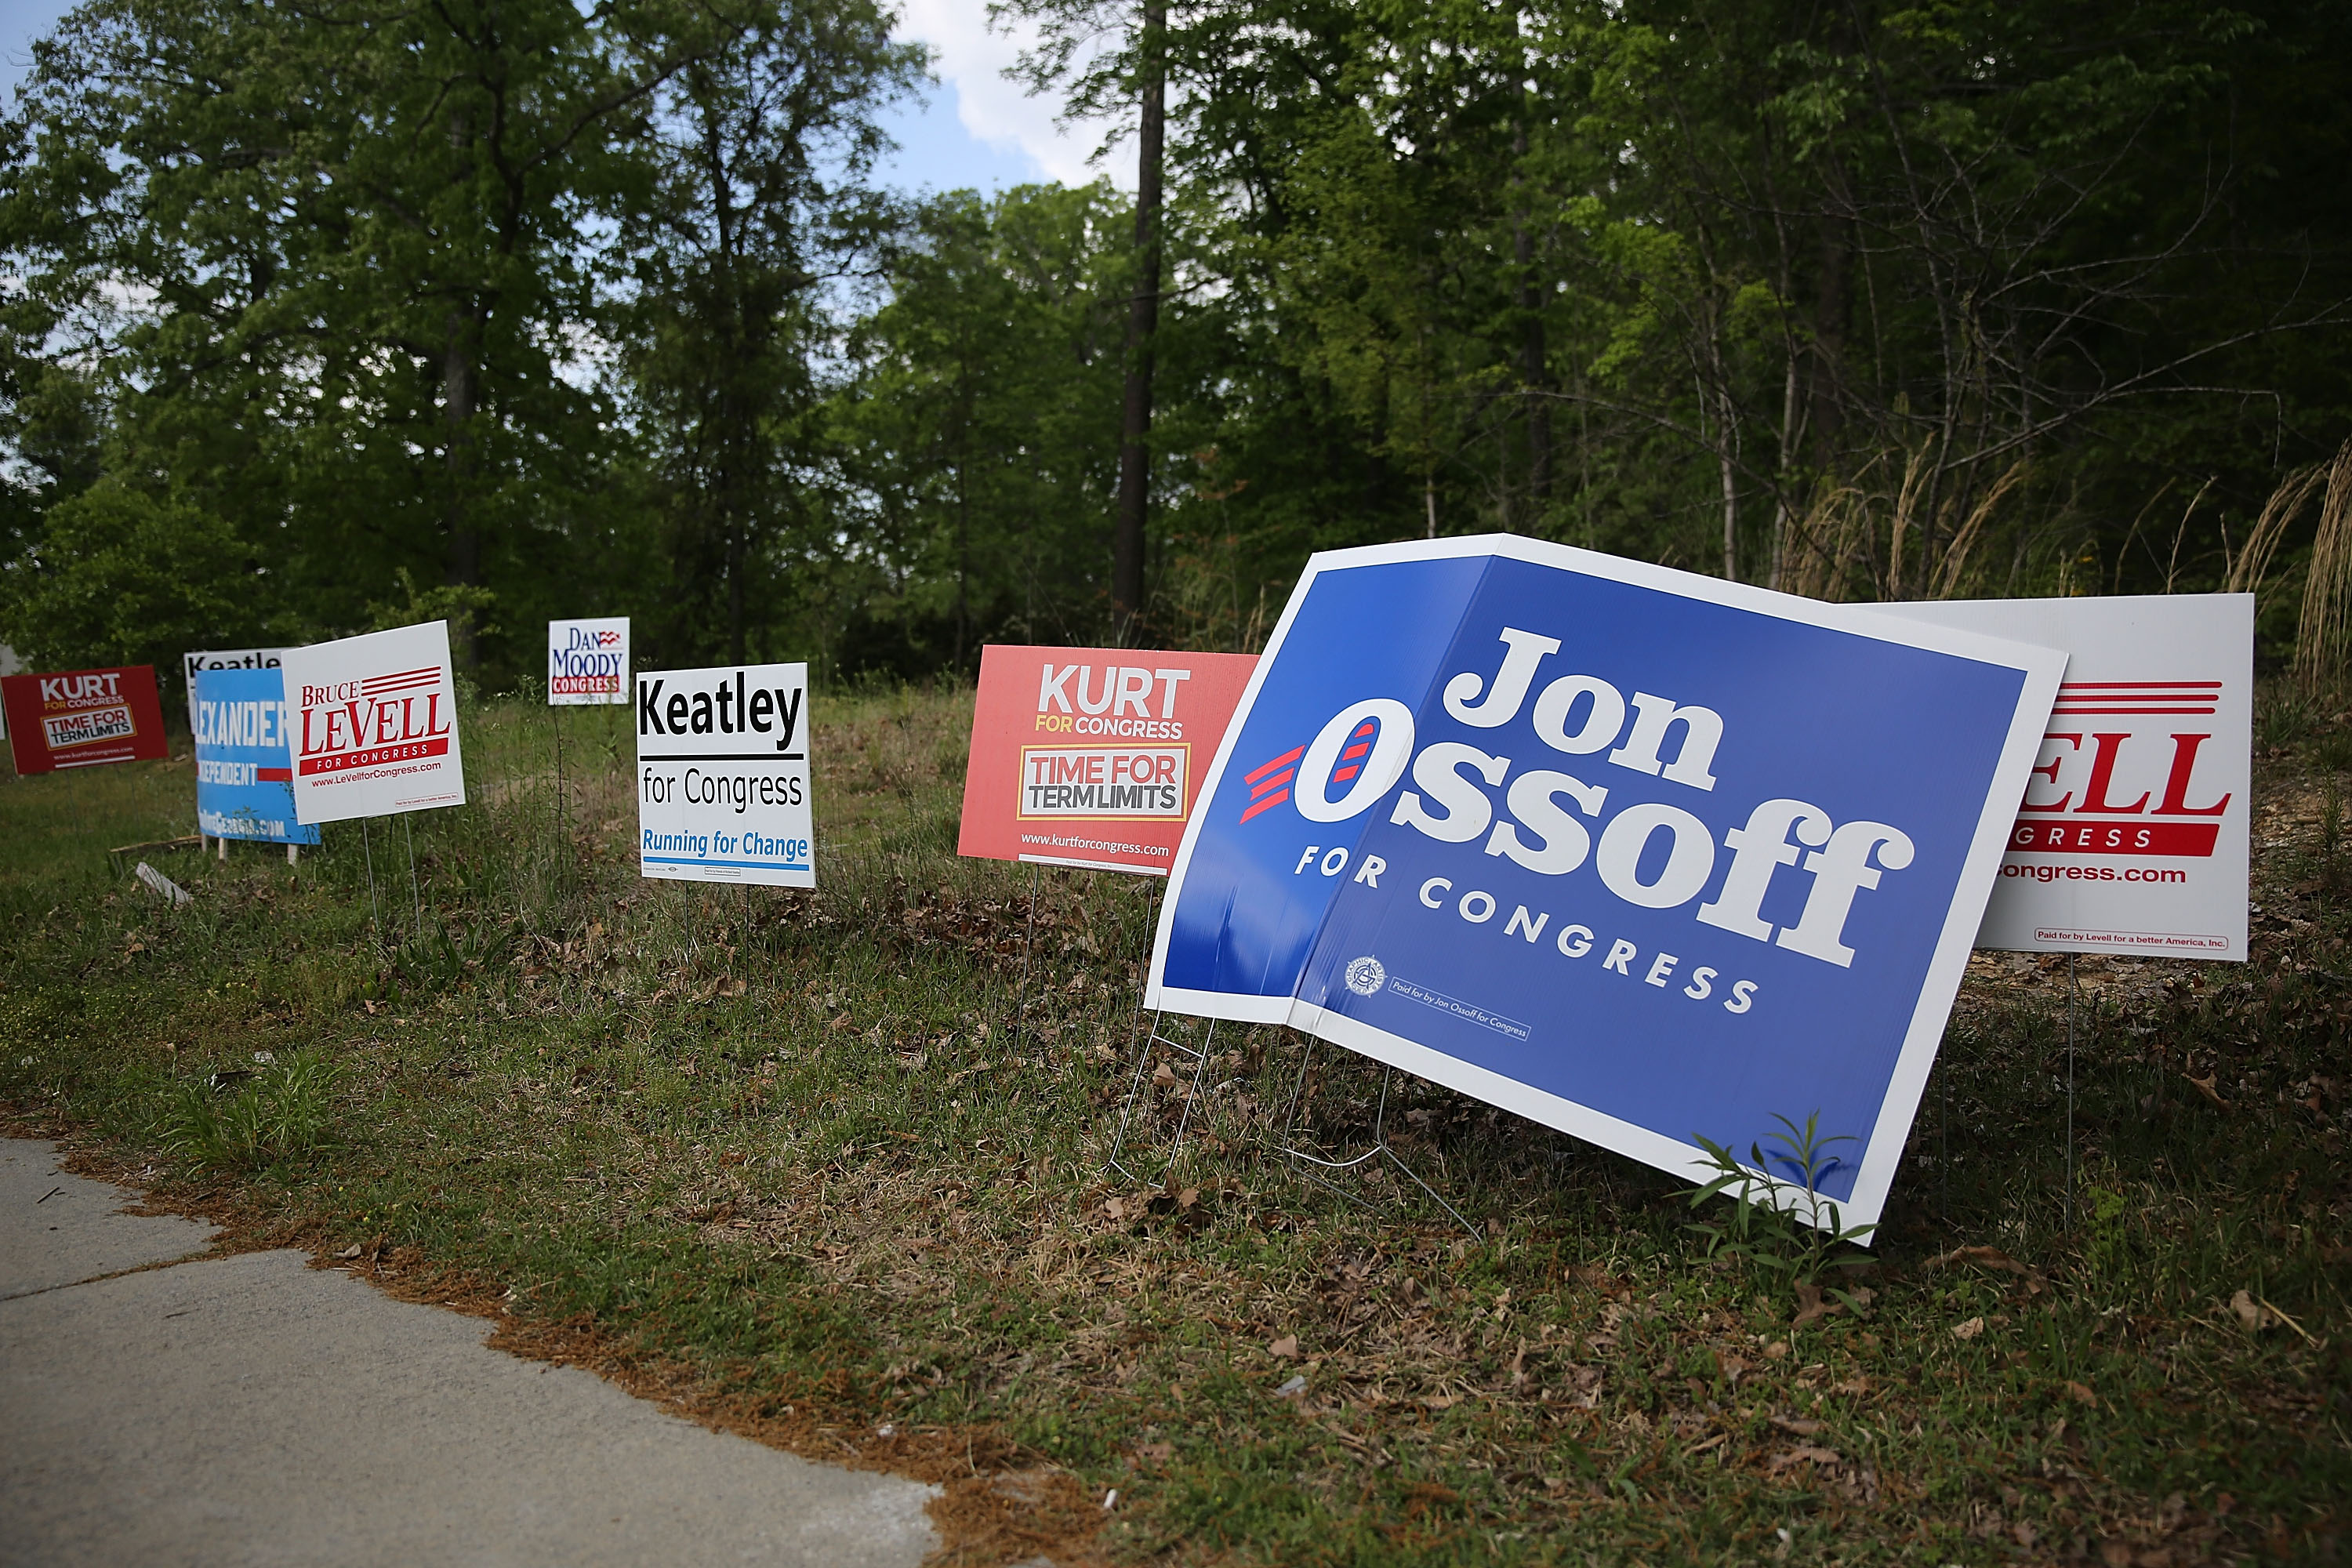 A campaign sign for Democratic candidate Jon Ossoff is seen among other candidates' signs as he runs for Georgia's 6th Congressional District in a special election to replace Tom Price, who is now the secretary of Health and Human Services on April 16, 2017 in Atlanta, Georgia.